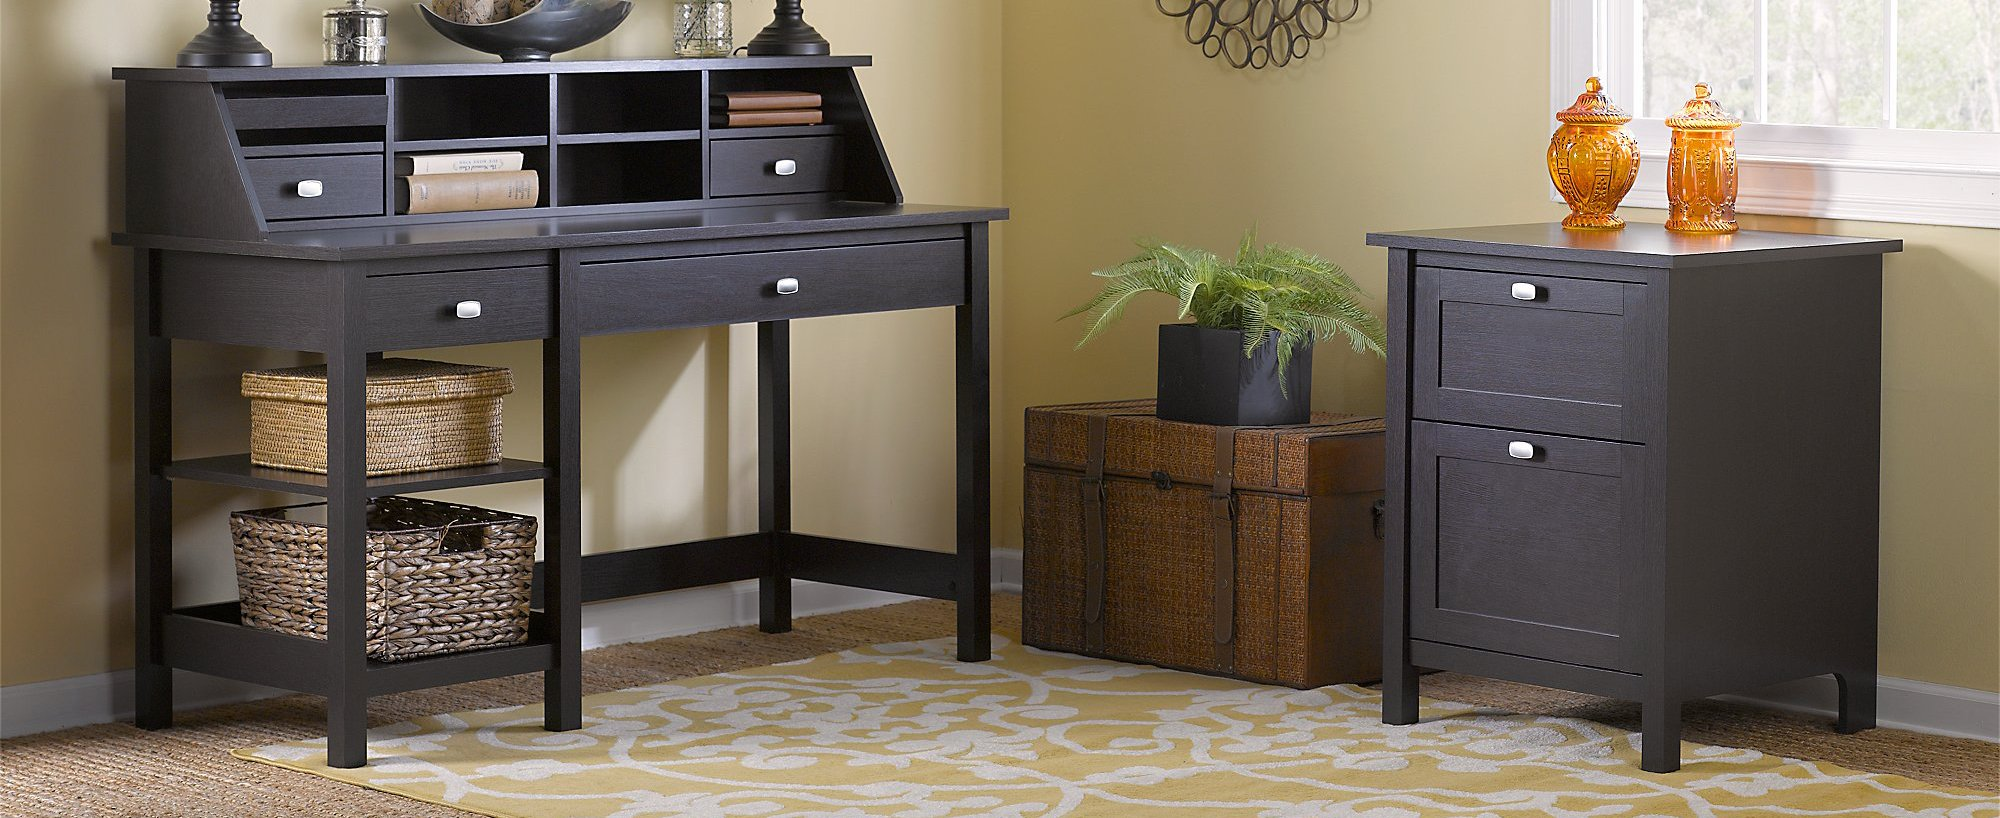 Broadview Computer Desk with Open Storage, Organizer and File Cabinet